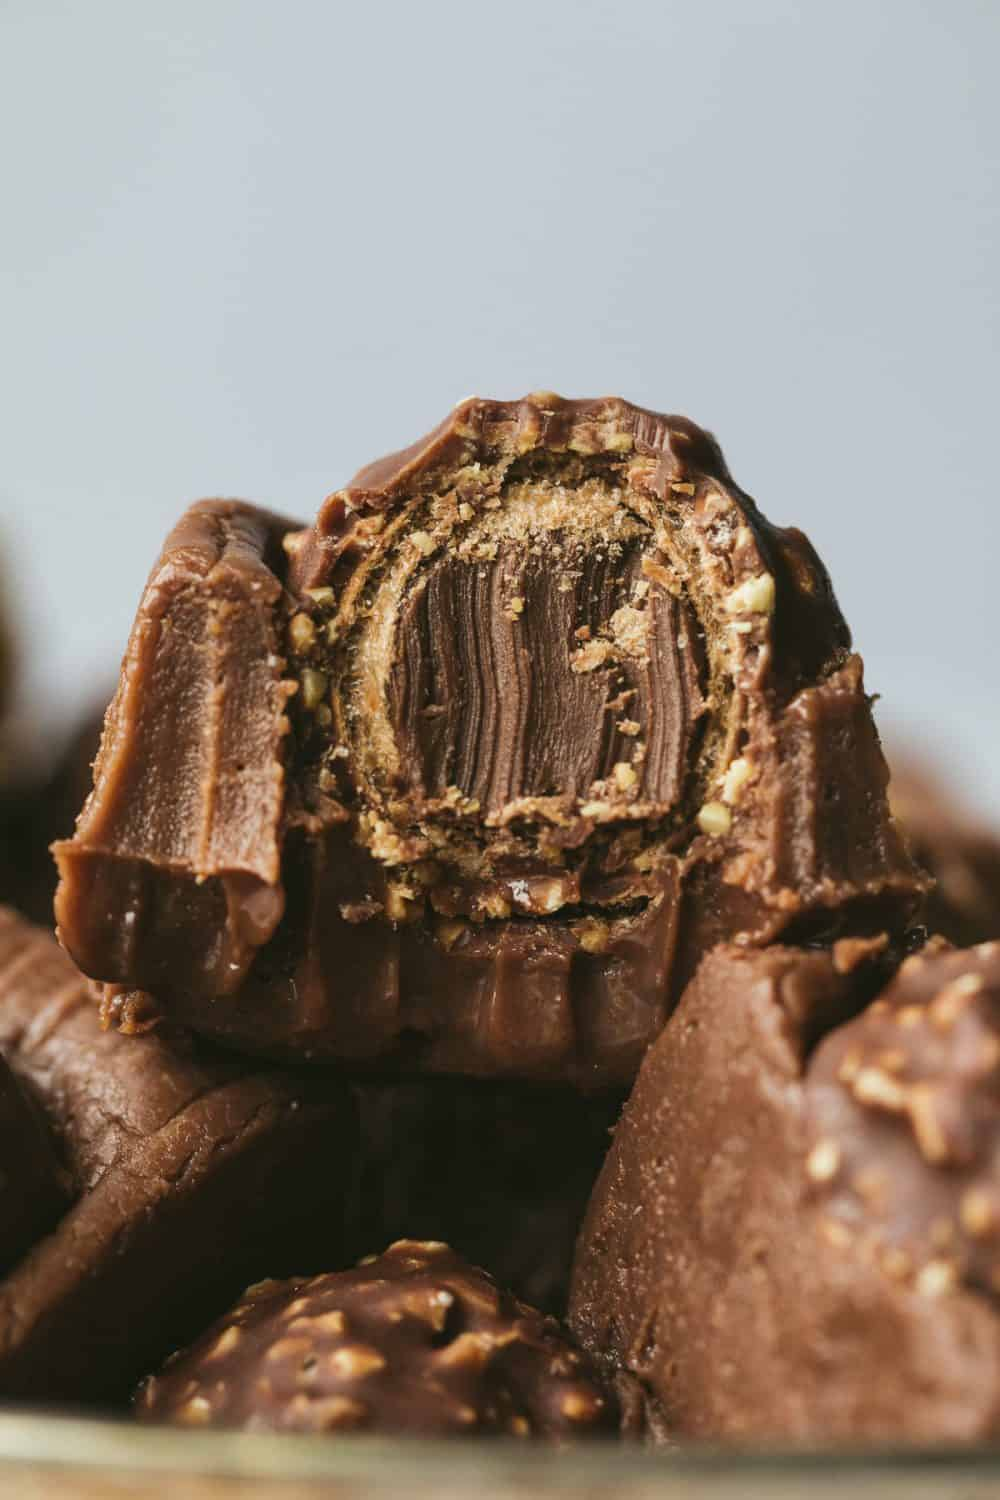 A very close up image of a piece of fudge that has had a bite taken out of it. Teeth marks are visible.